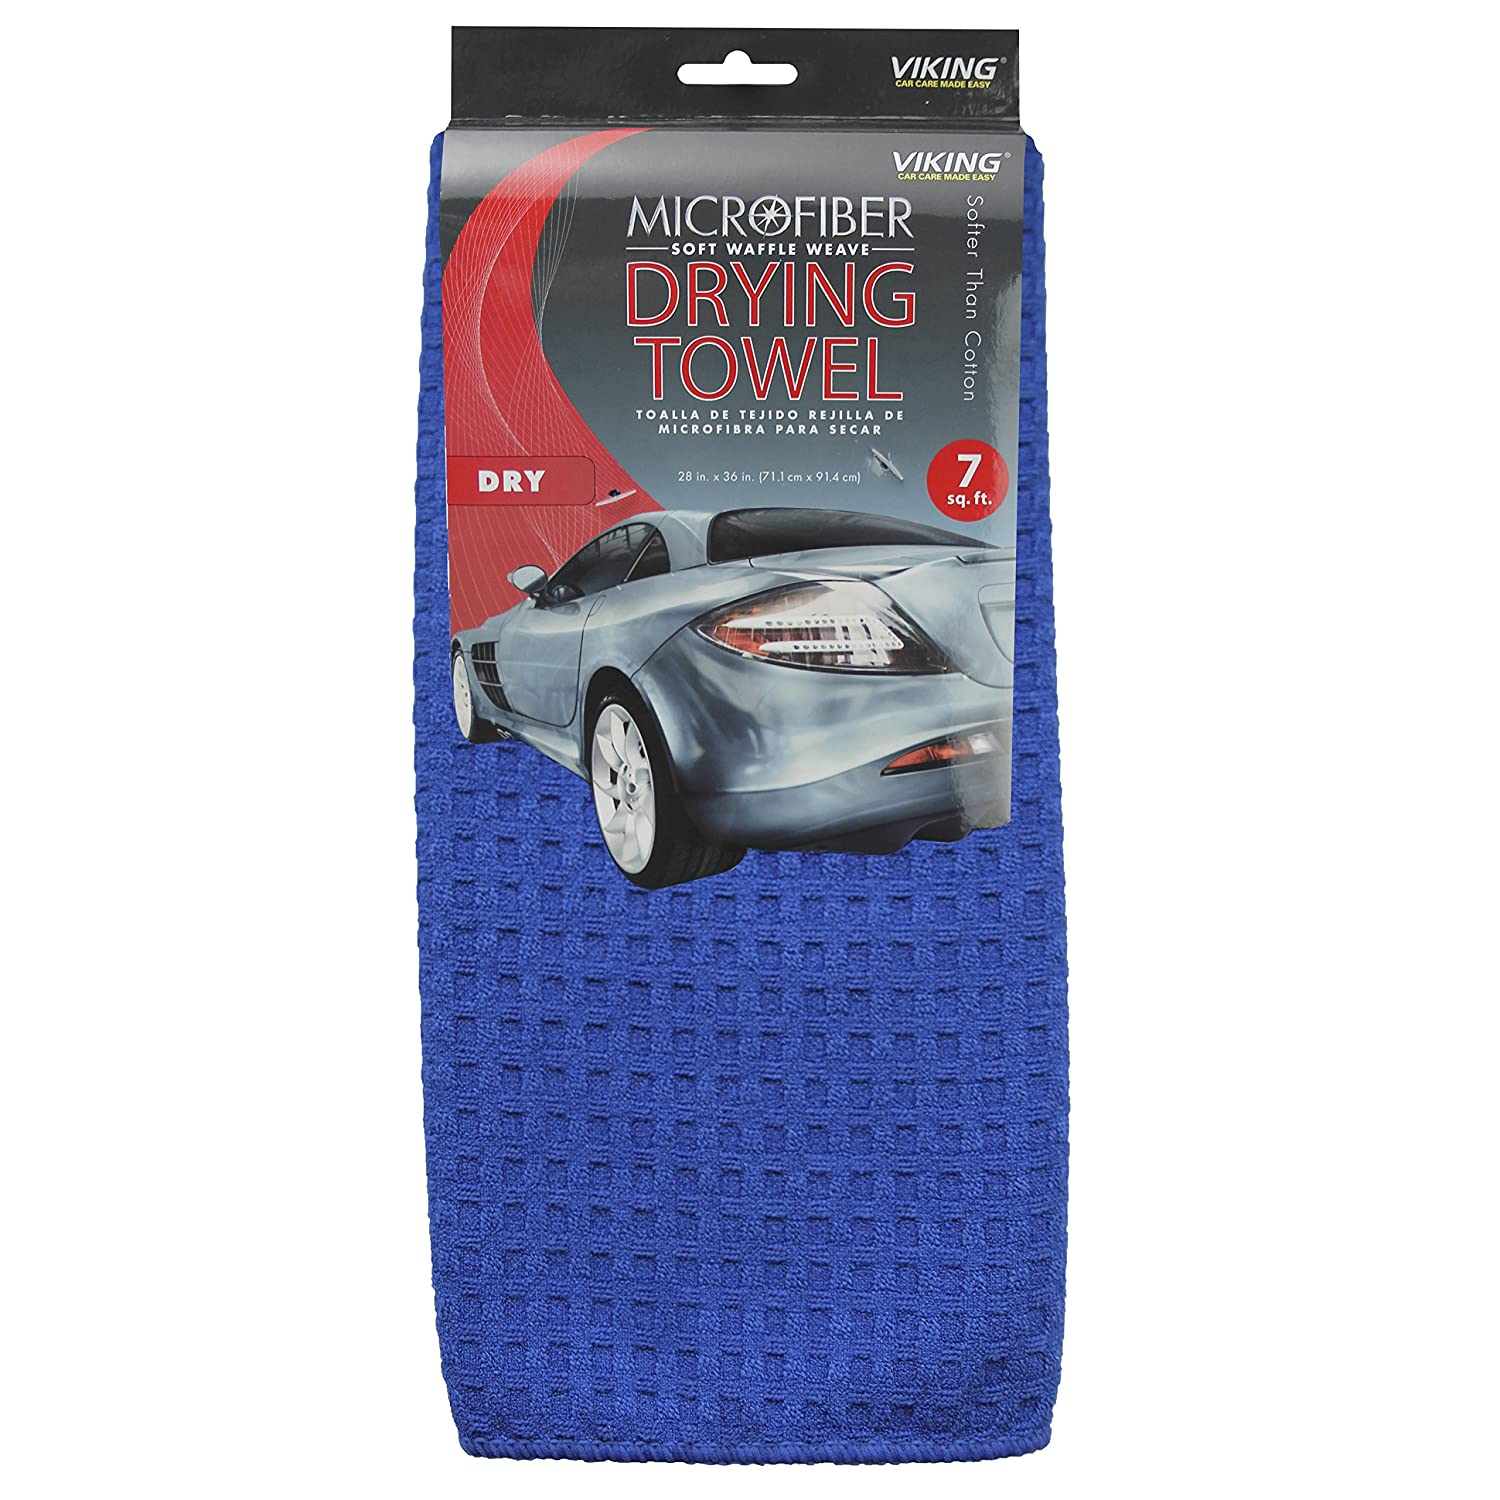 Viking Car Care Waffle Weave Drying Towel, 7 Square Feet, Blue 912400